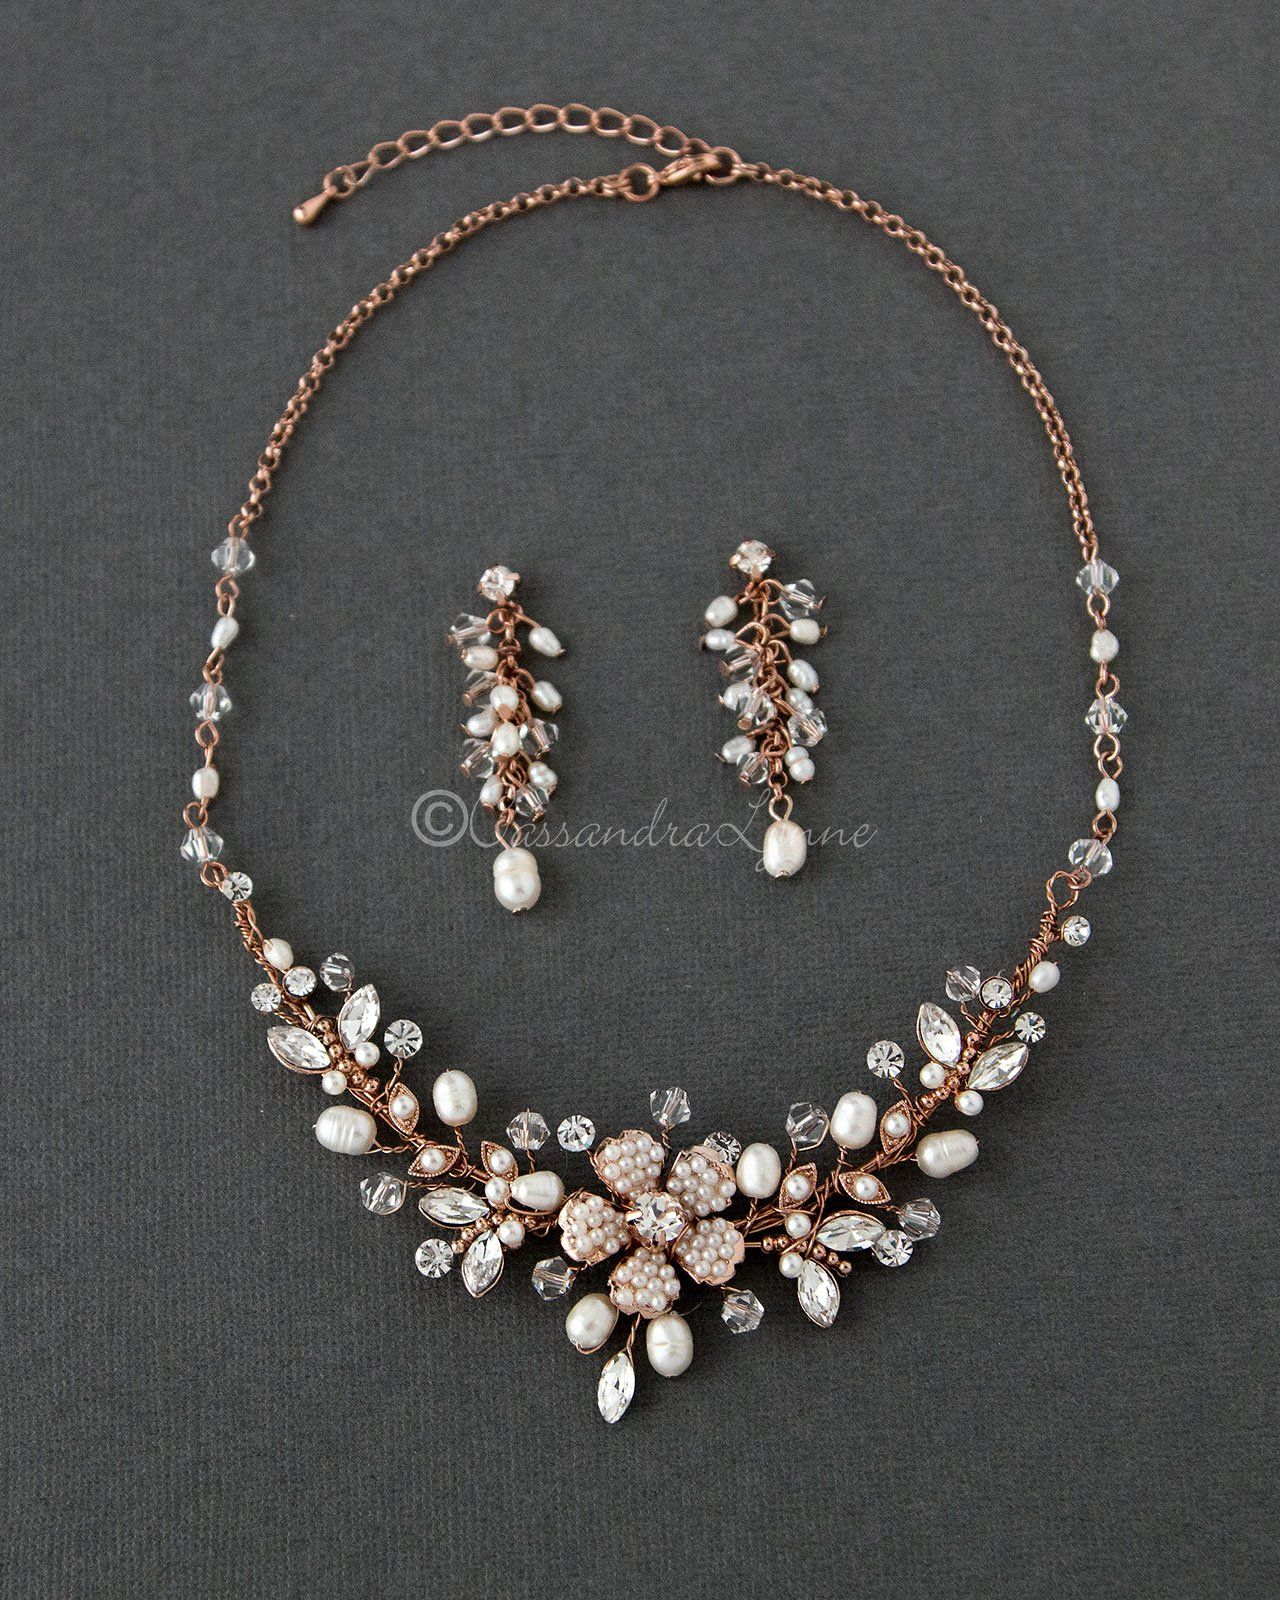 25Ct Marquise Cut Diamond Tennis Wedding Engagement Necklace 14K Rose Gold Over